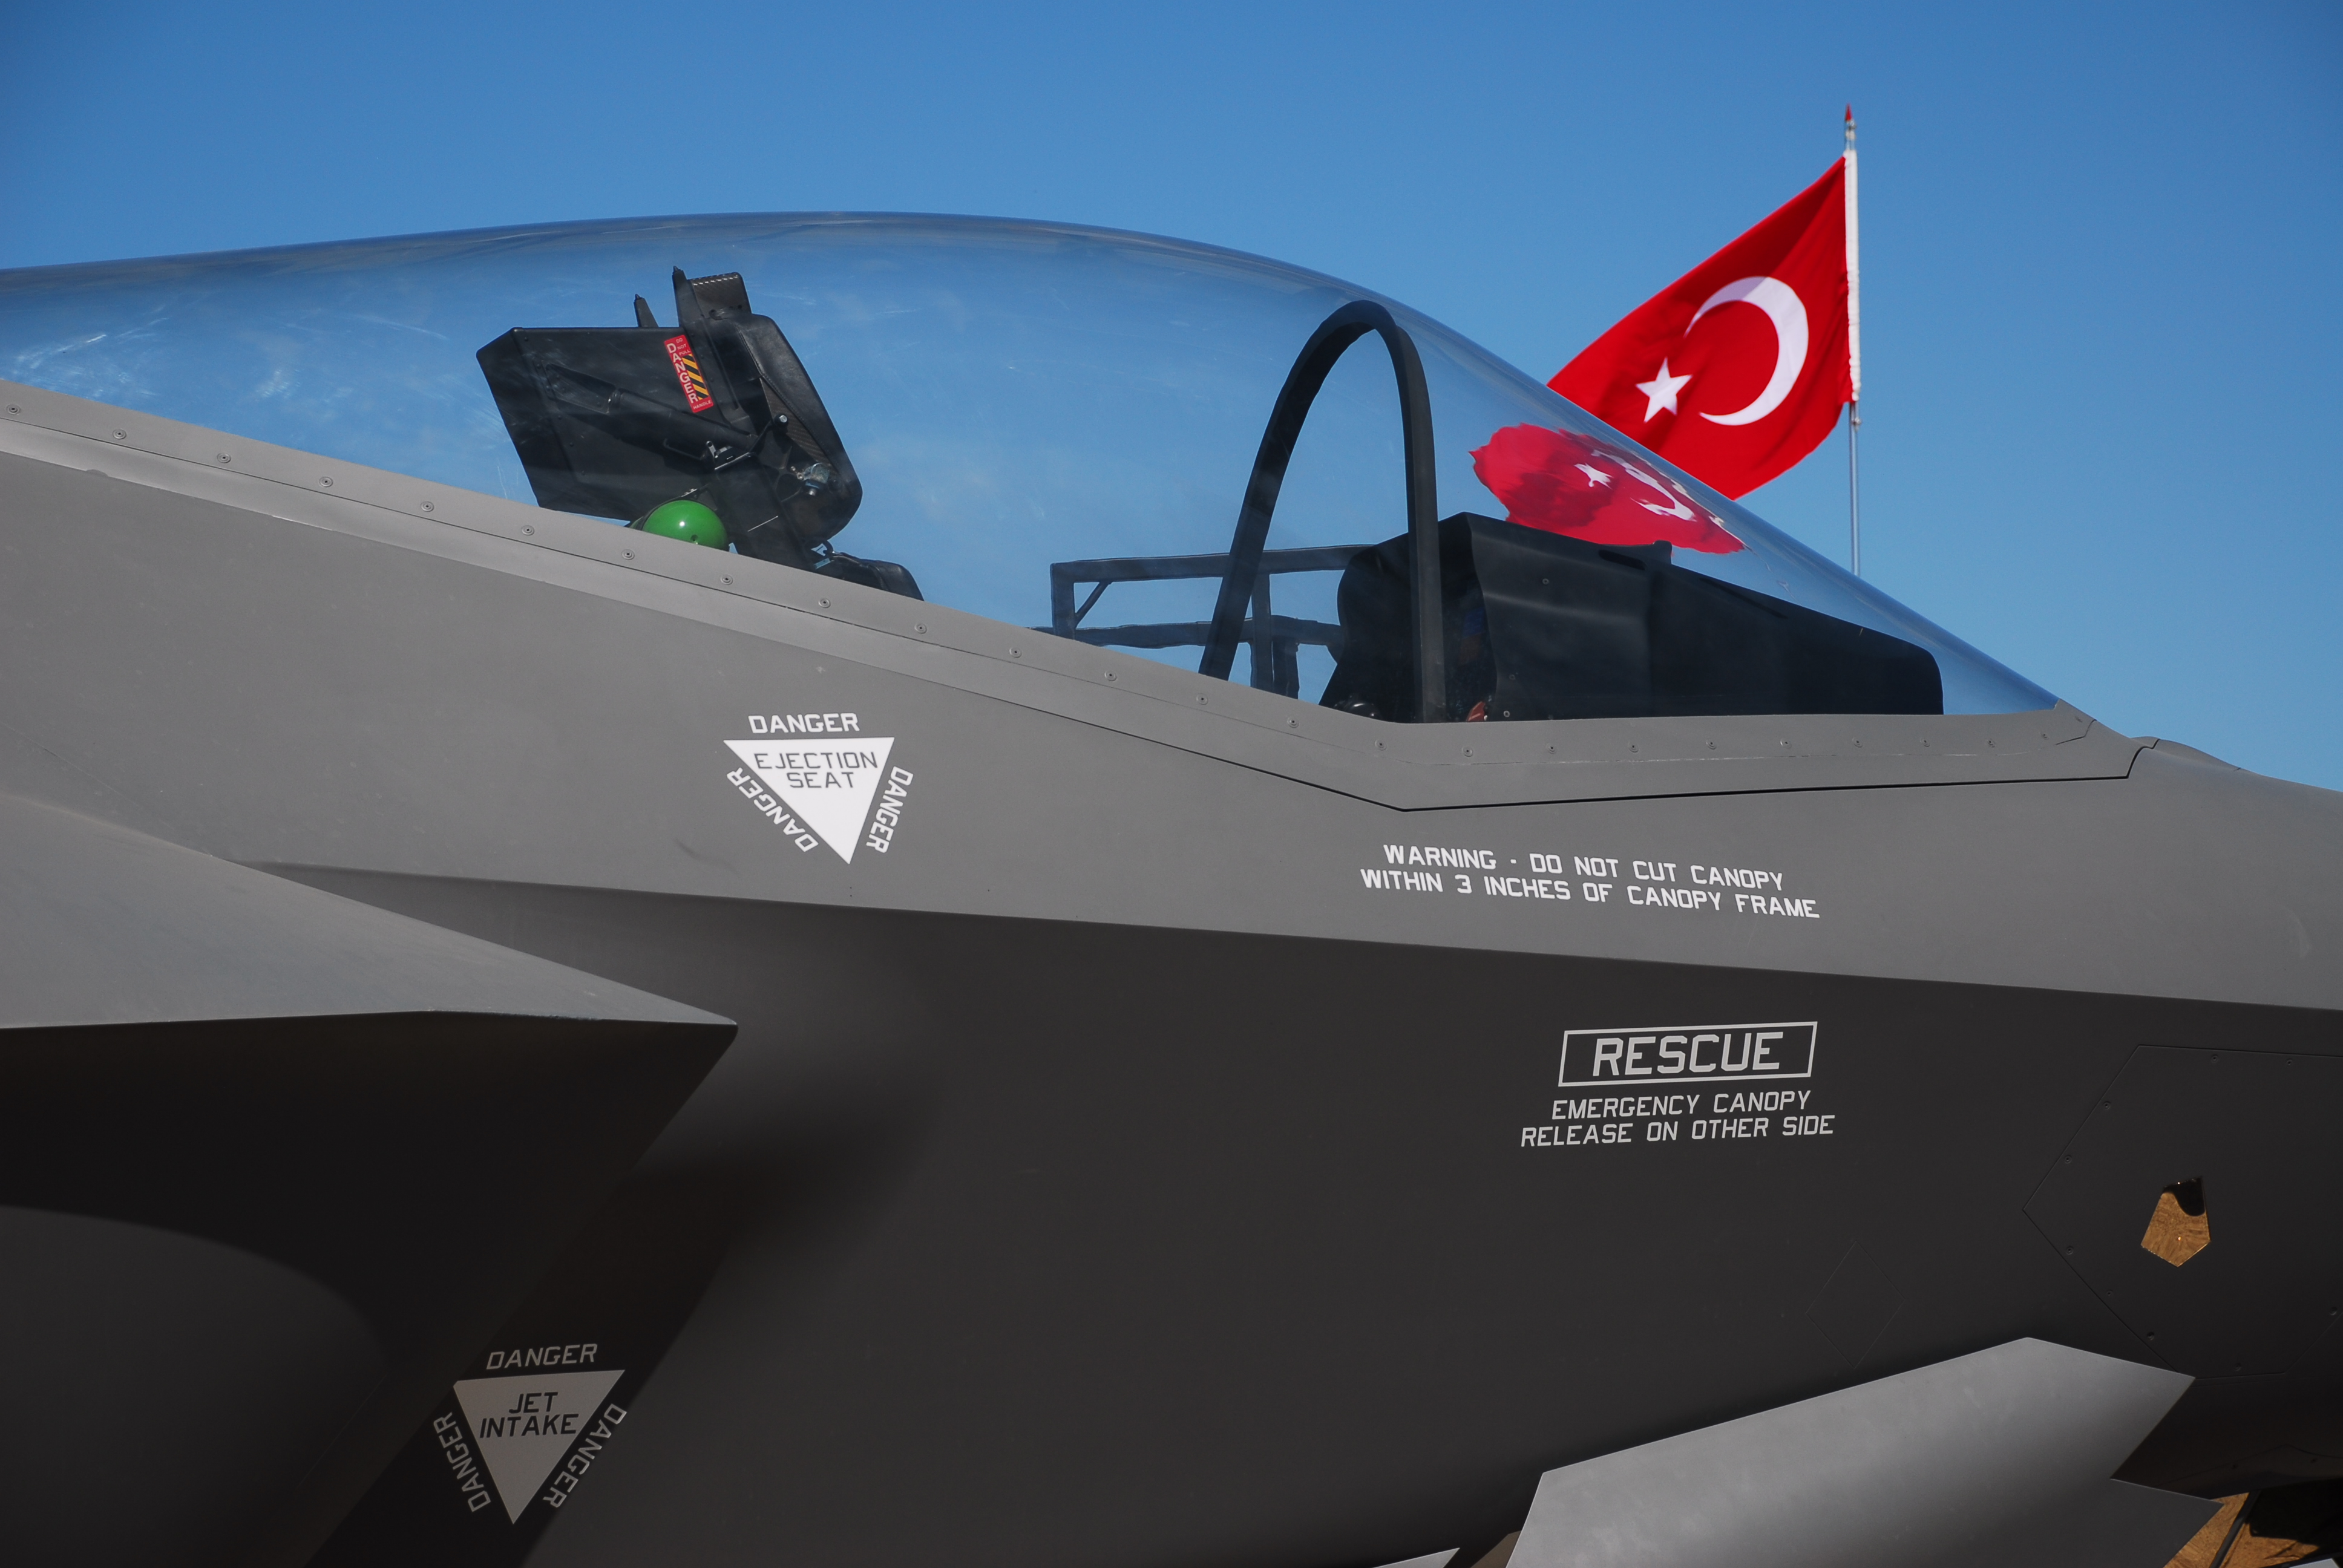 A mock-up of the F-35 cockpit is on display at an air show in Cigli, Turkey. (dardanellas/Getty Images)